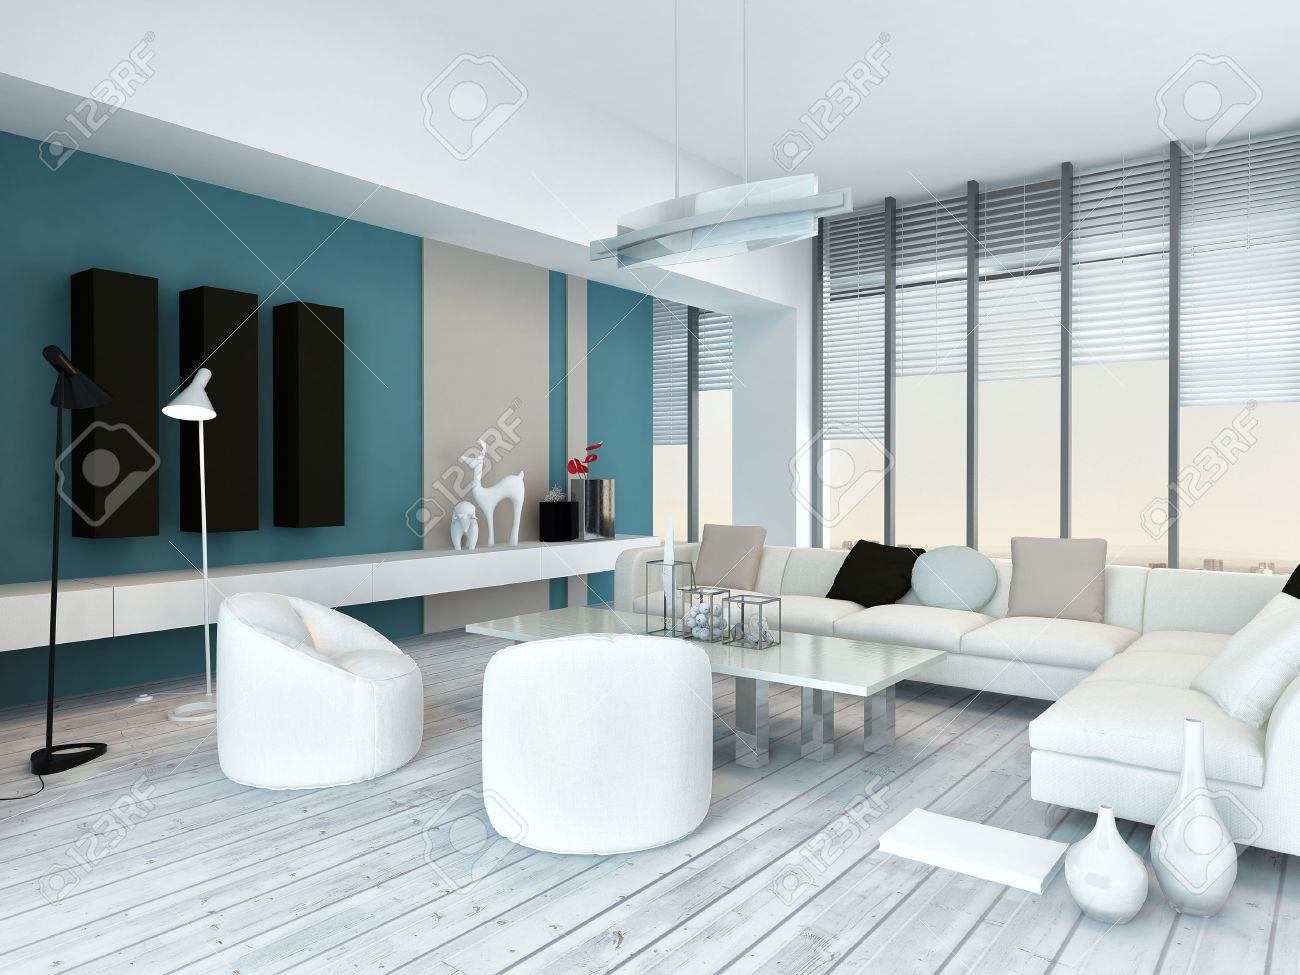 Cool Blue And White Modern Living Room Inyerior With White Painted